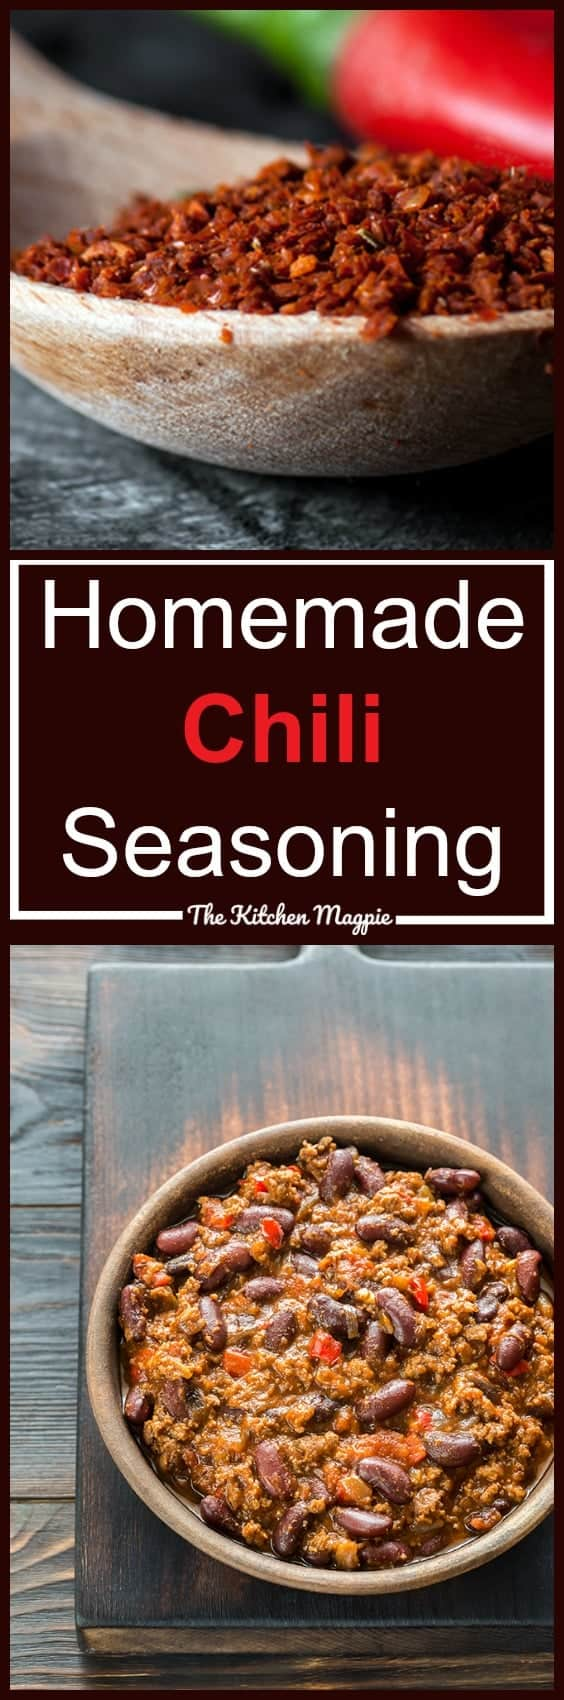 How to Make Homemade Chili Seasoning! This mix is perfect for whenever you need to make chili seasoning from scratch!